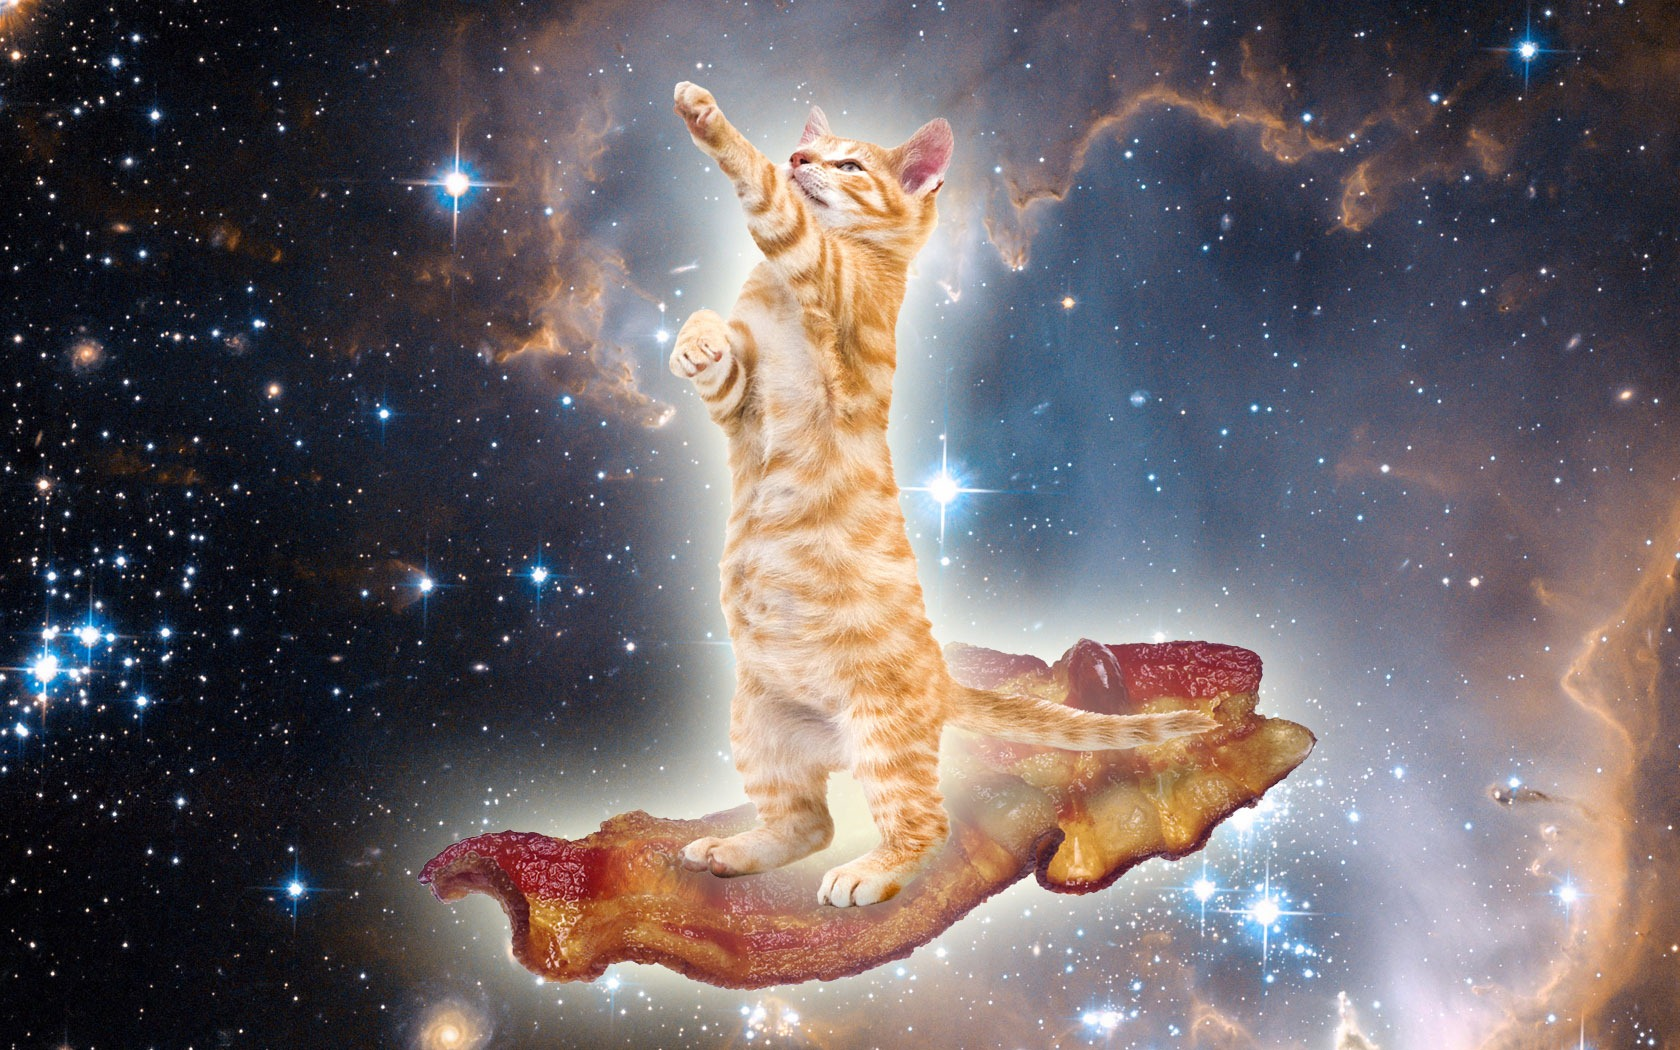 Space Kitty Wallpaper